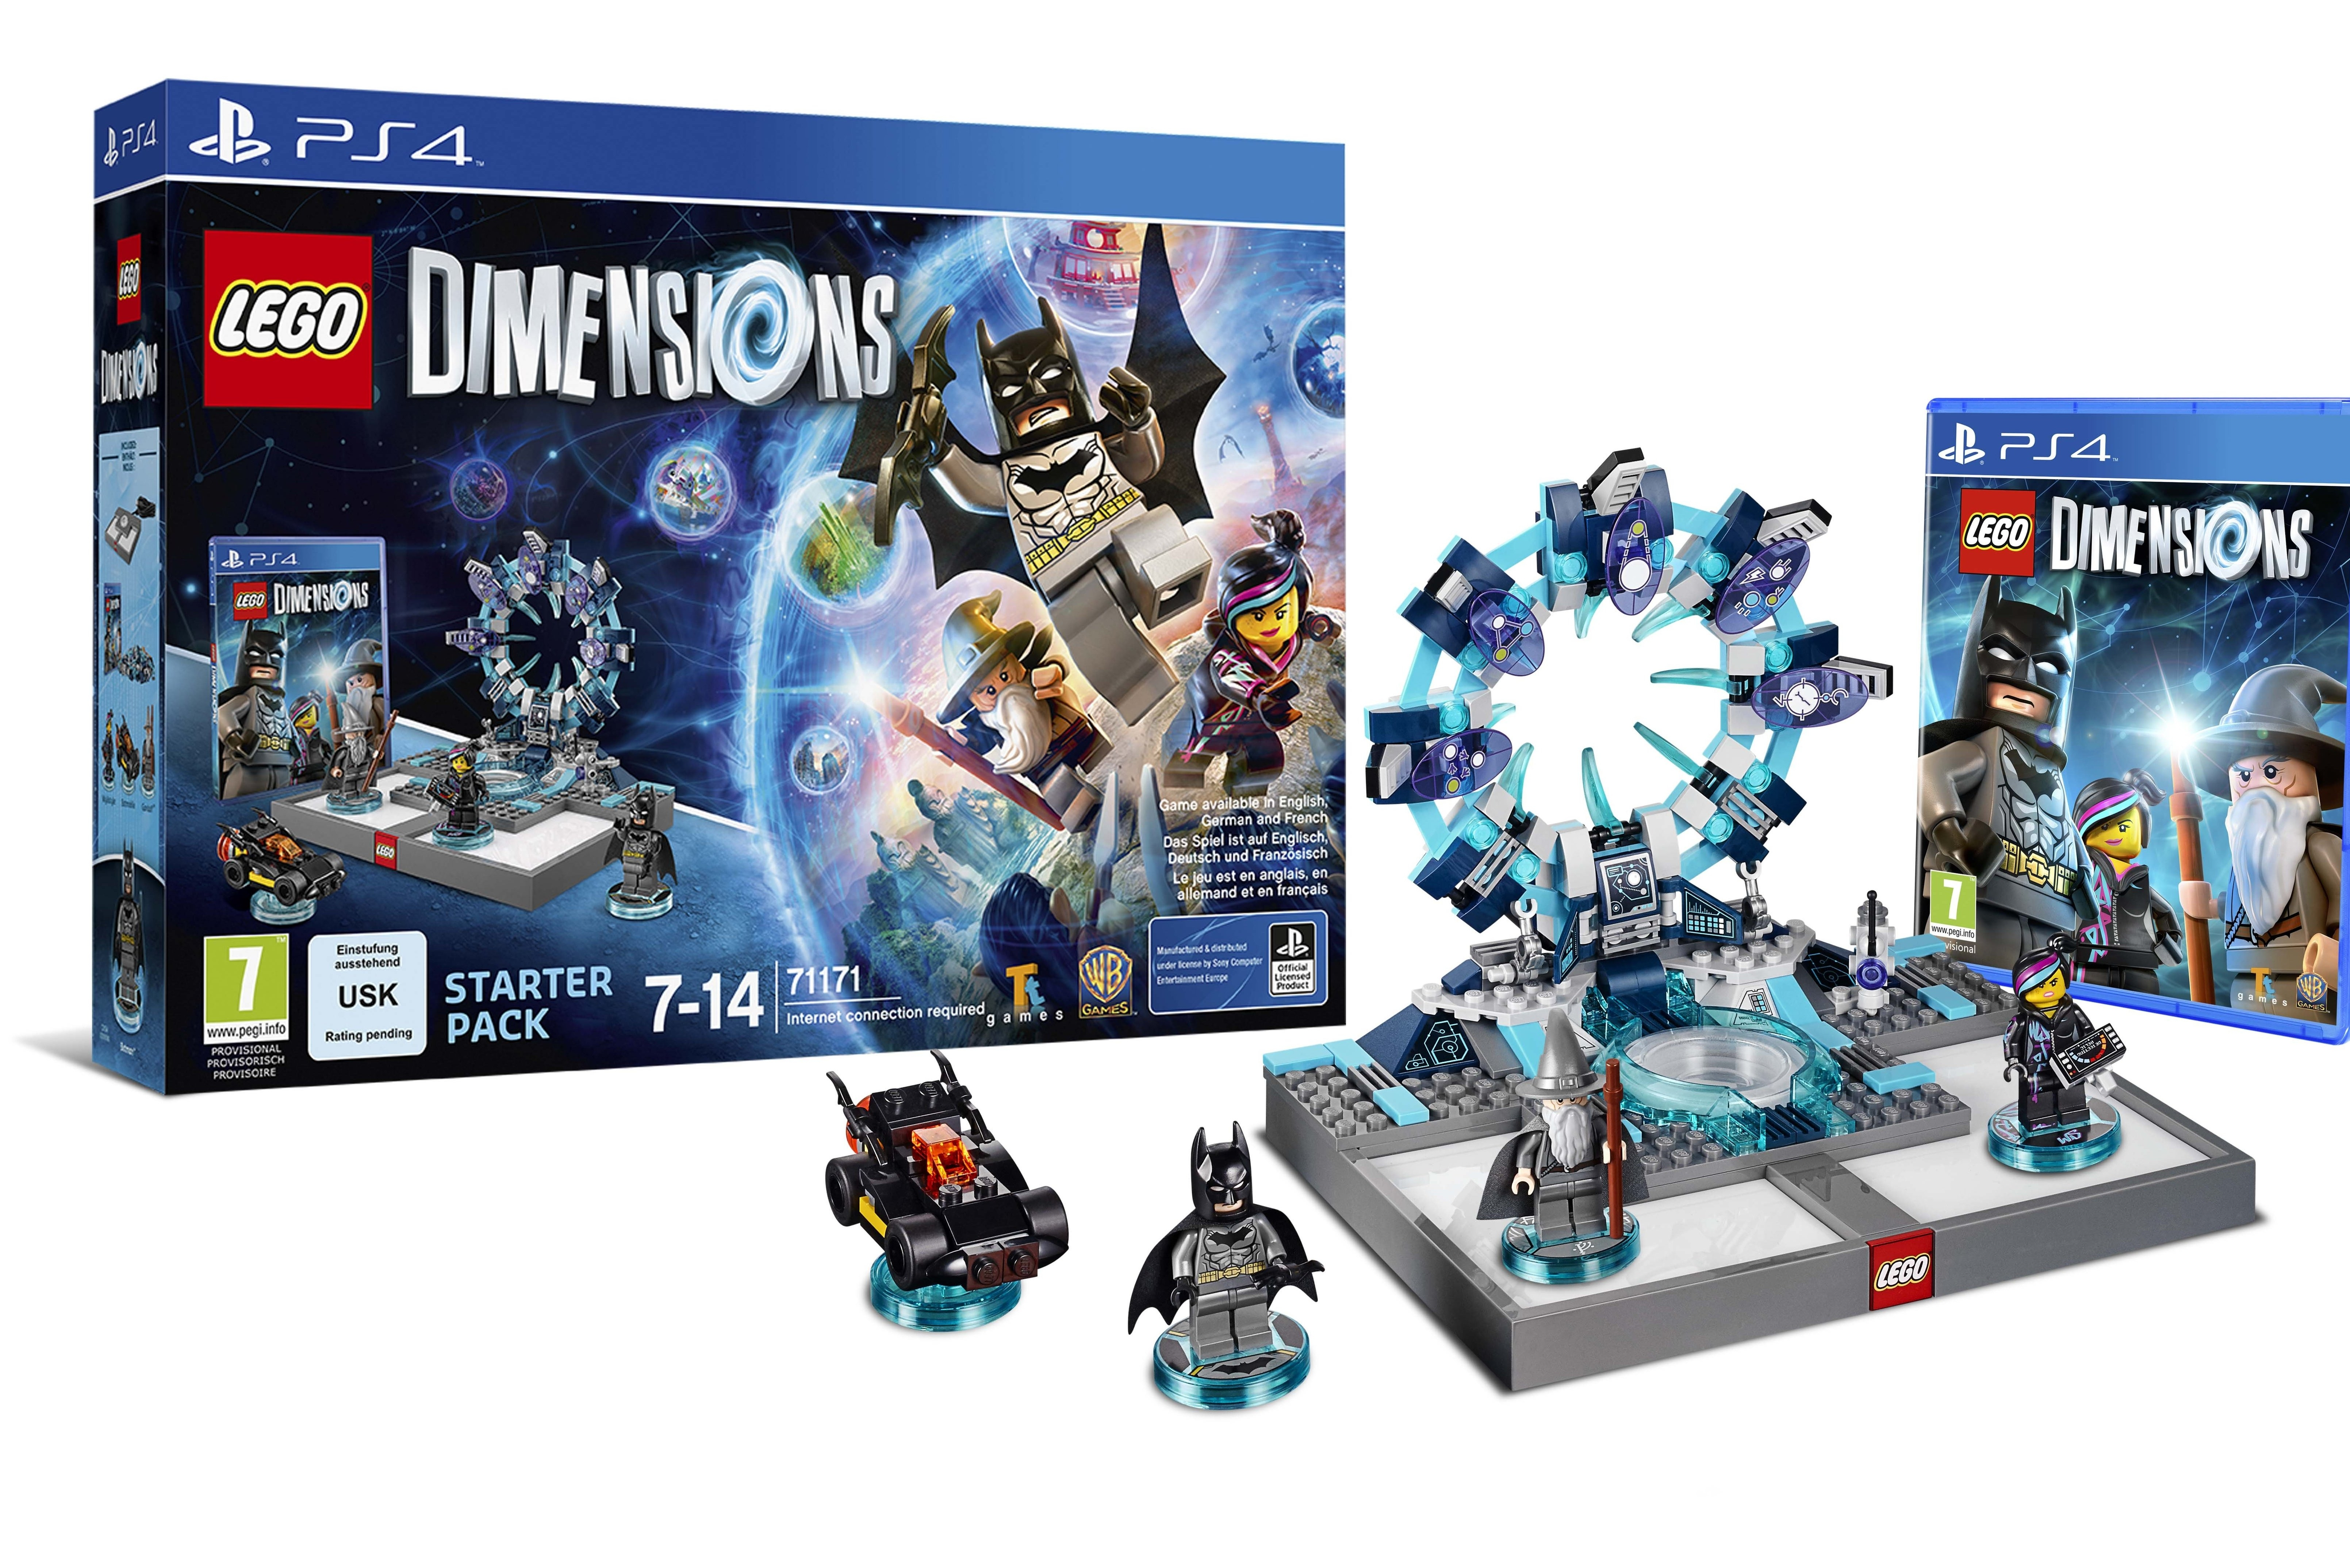 skylanders style lego dimensions features batman gandalf back to the future. Black Bedroom Furniture Sets. Home Design Ideas